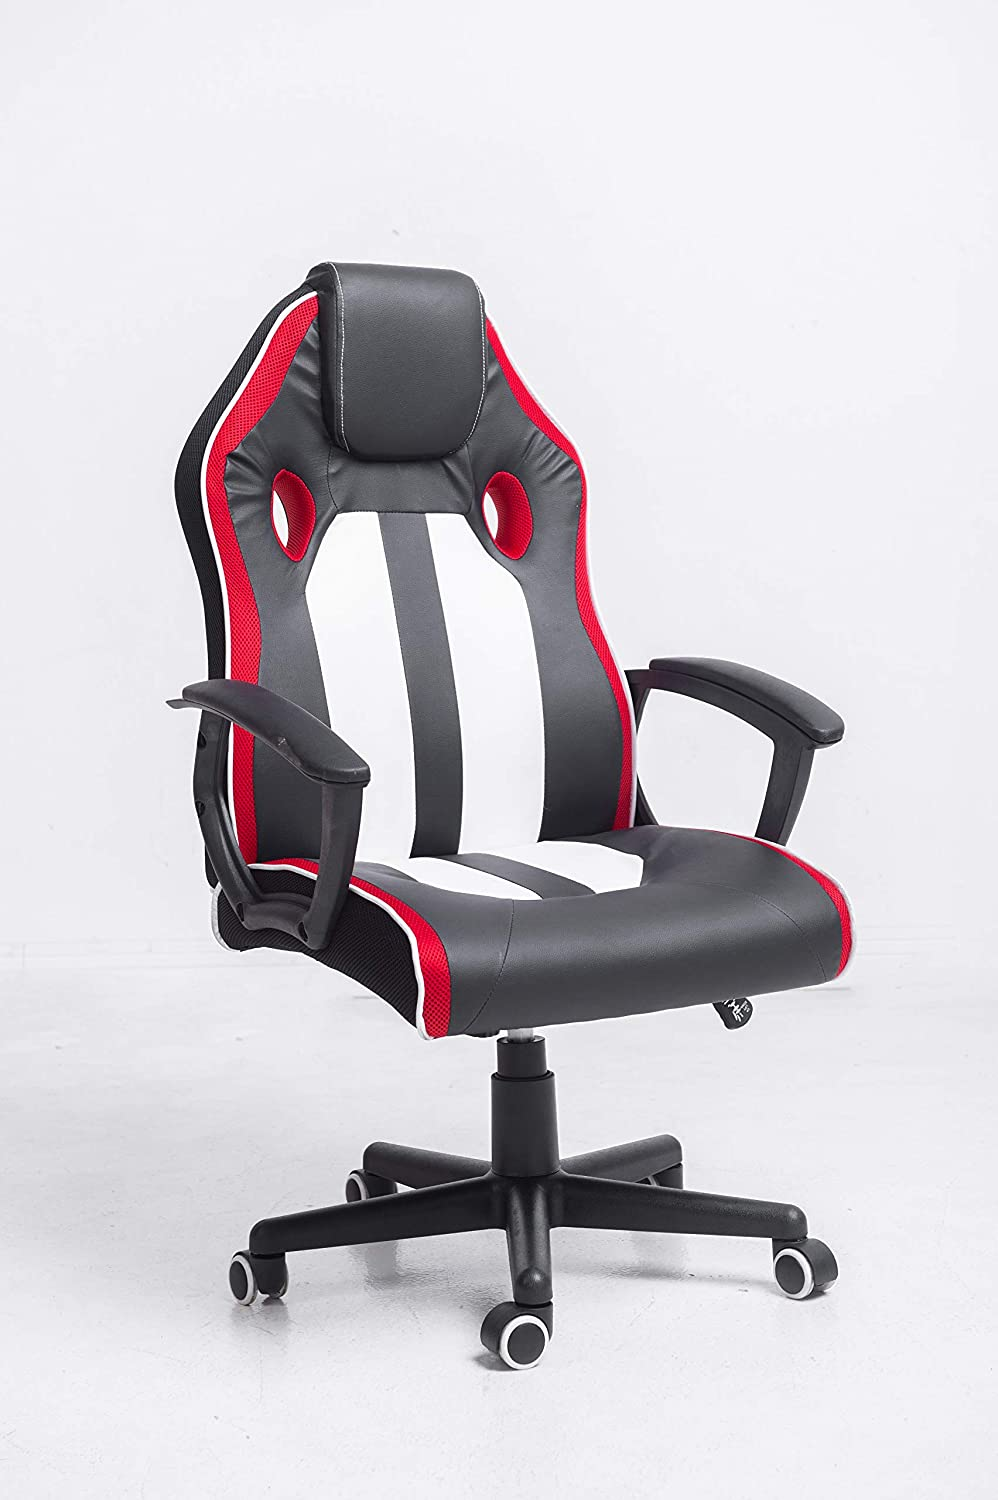 Ergonomic Gaming Chair with Adjustable Height and Lumbar Support Black, Red and White